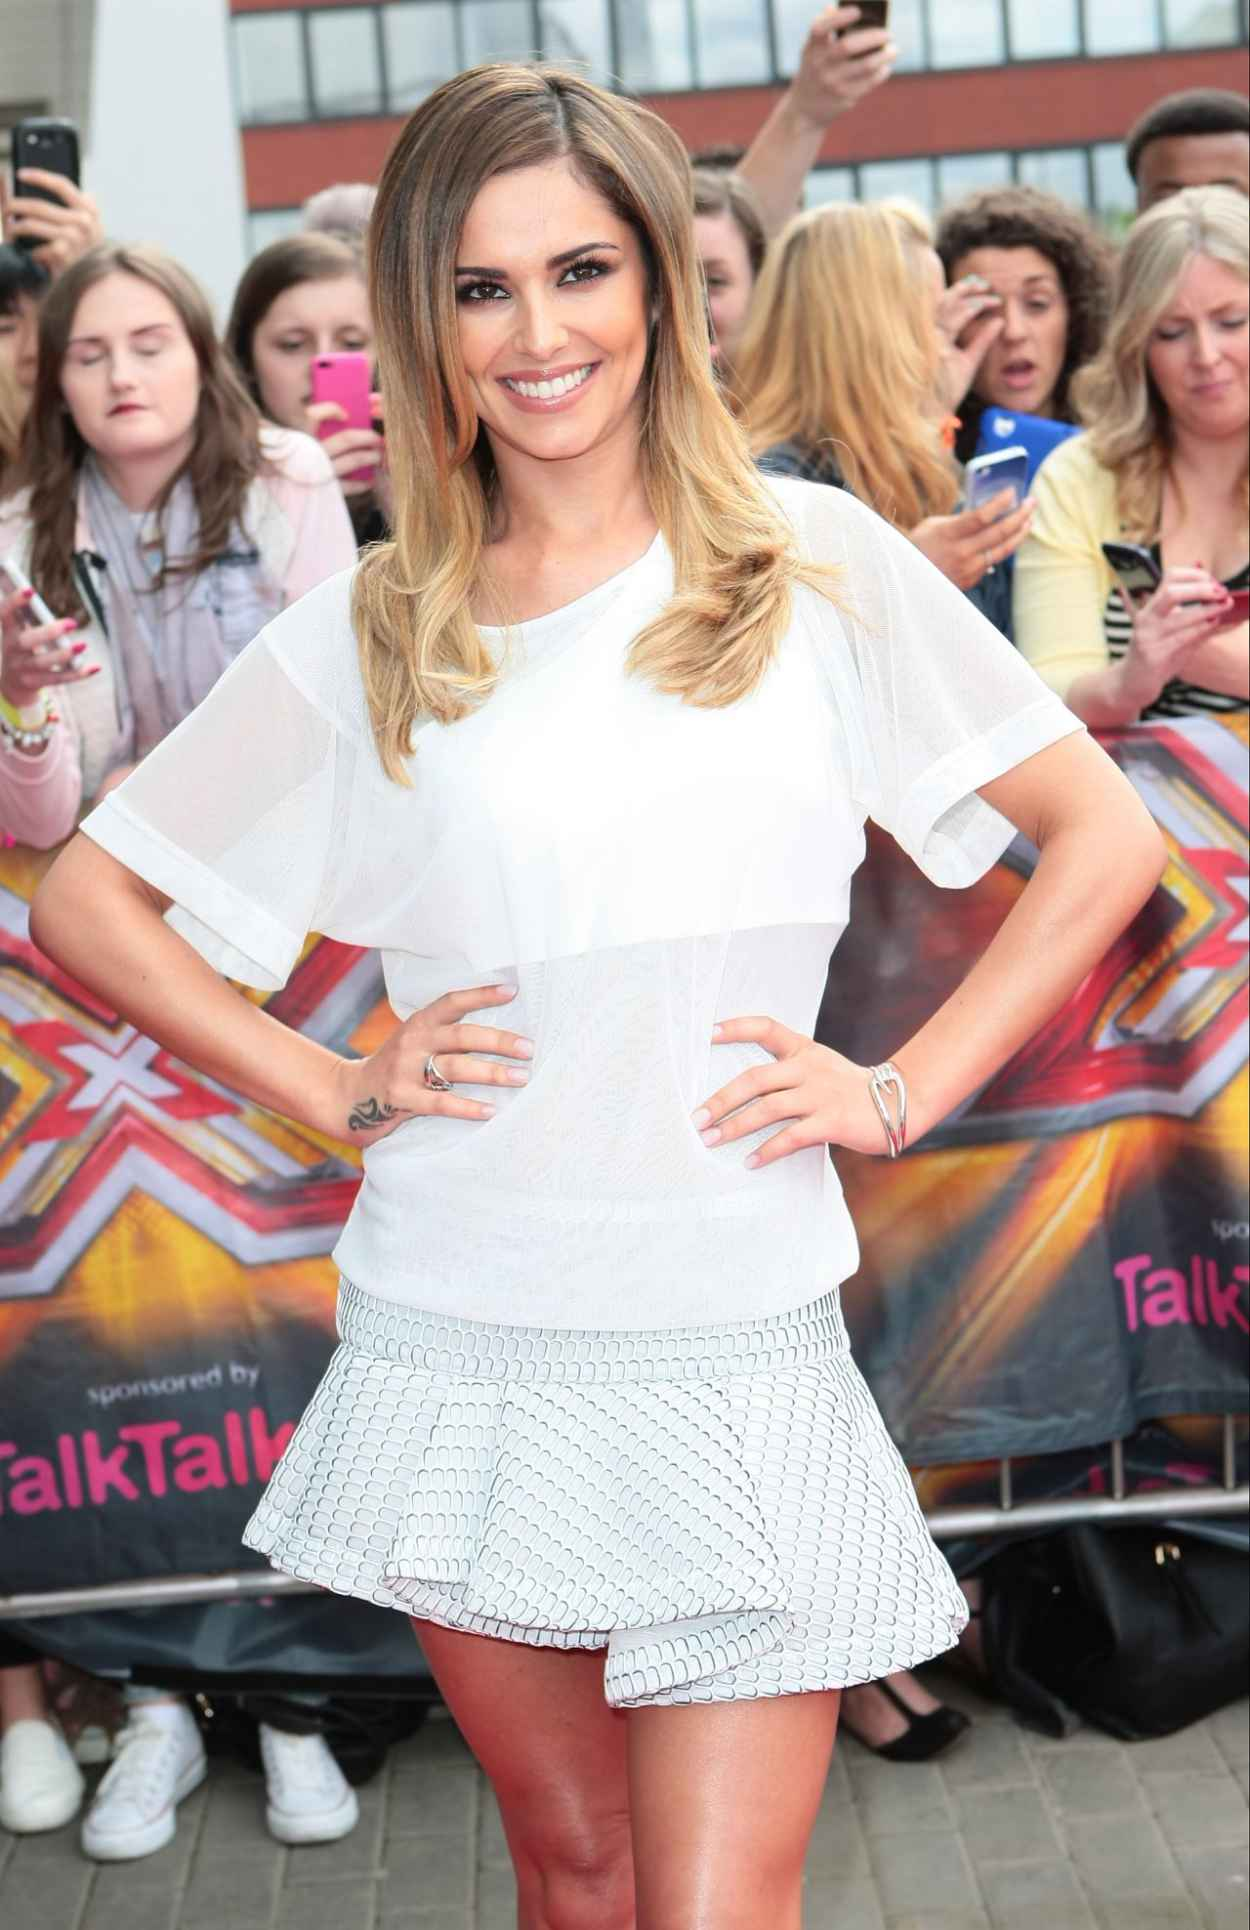 Cheryl Cole Shows off Her Legs - X Factor Auditions in Manchester - June 2015-2